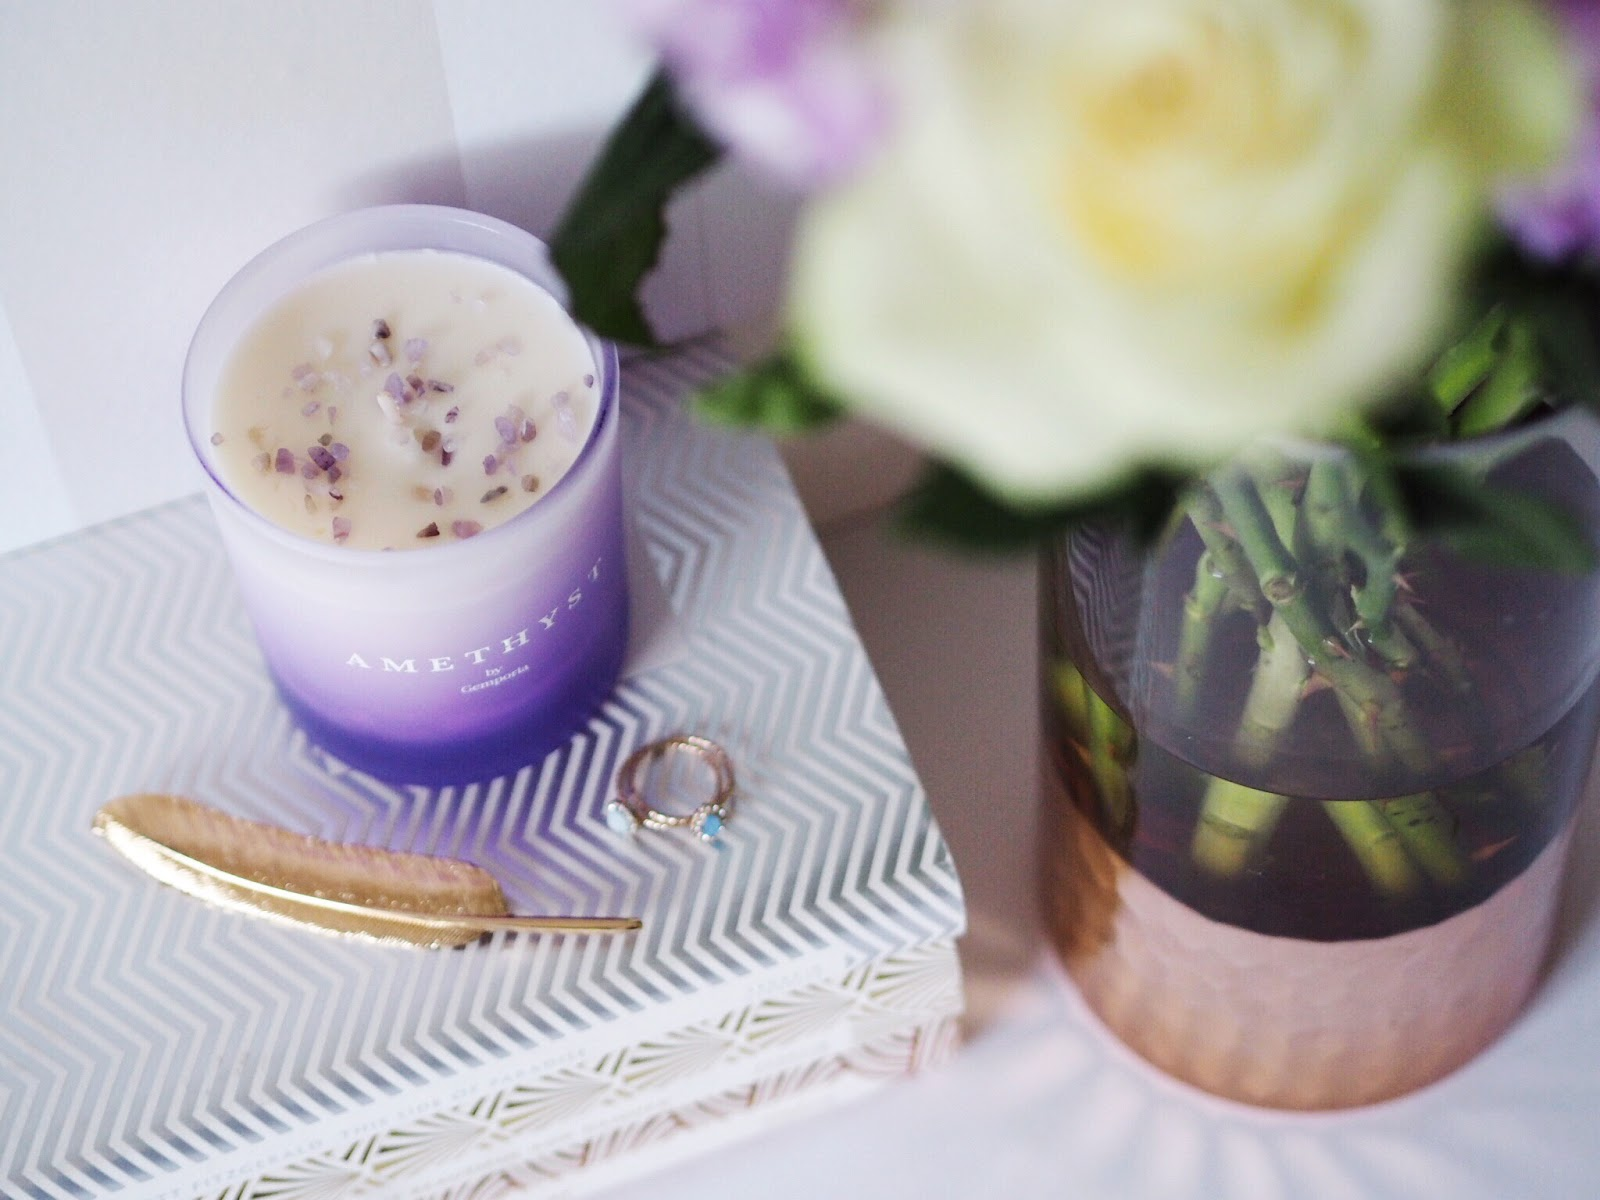 Gemporia Amethyst Birthstone Candle with White Roses and Lilac Stocks